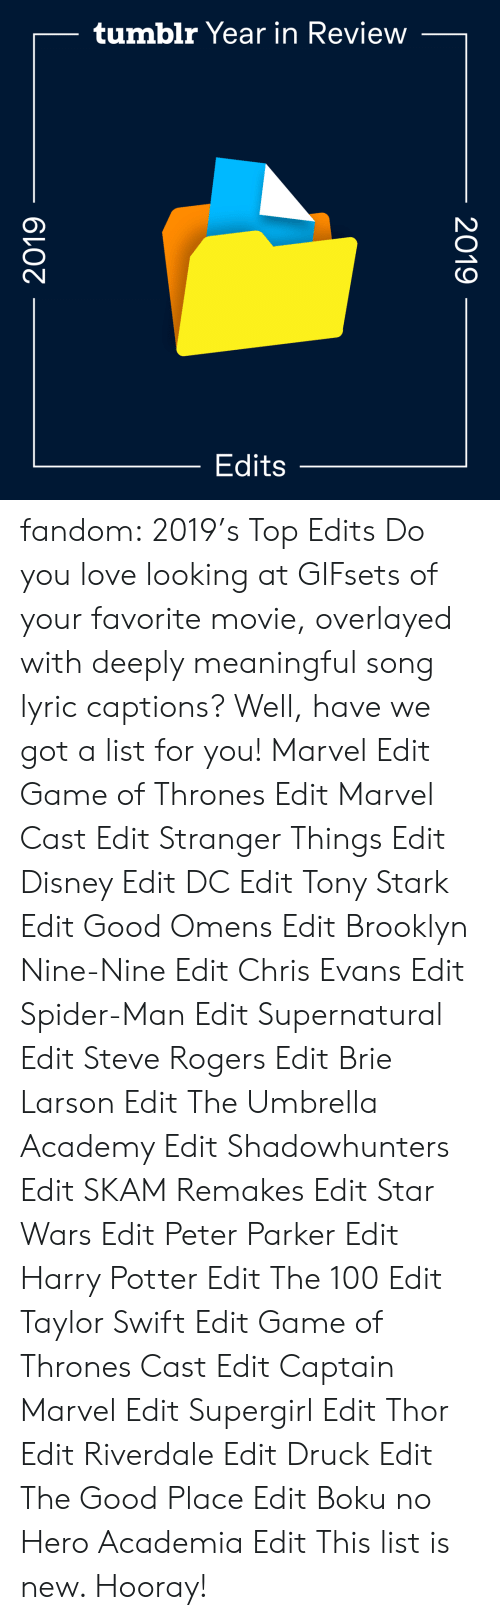 Brooklyn: tumblr Year in Review  Edits  2019  2019 fandom:  2019's Top Edits  Do you love looking at GIFsets of your favorite movie, overlayed with deeply meaningful song lyric captions? Well, have we got a list for you!  Marvel Edit  Game of Thrones Edit  Marvel Cast Edit  Stranger Things Edit  Disney Edit  DC Edit  Tony Stark Edit  Good Omens Edit  Brooklyn Nine-Nine Edit  Chris Evans Edit  Spider-Man Edit  Supernatural Edit  Steve Rogers Edit  Brie Larson Edit  The Umbrella Academy Edit  Shadowhunters Edit  SKAM Remakes Edit  Star Wars Edit  Peter Parker Edit  Harry Potter Edit  The 100 Edit  Taylor Swift Edit  Game of Thrones Cast Edit  Captain Marvel Edit  Supergirl Edit  Thor Edit  Riverdale Edit  Druck Edit  The Good Place Edit  Boku no Hero Academia Edit This list is new. Hooray!